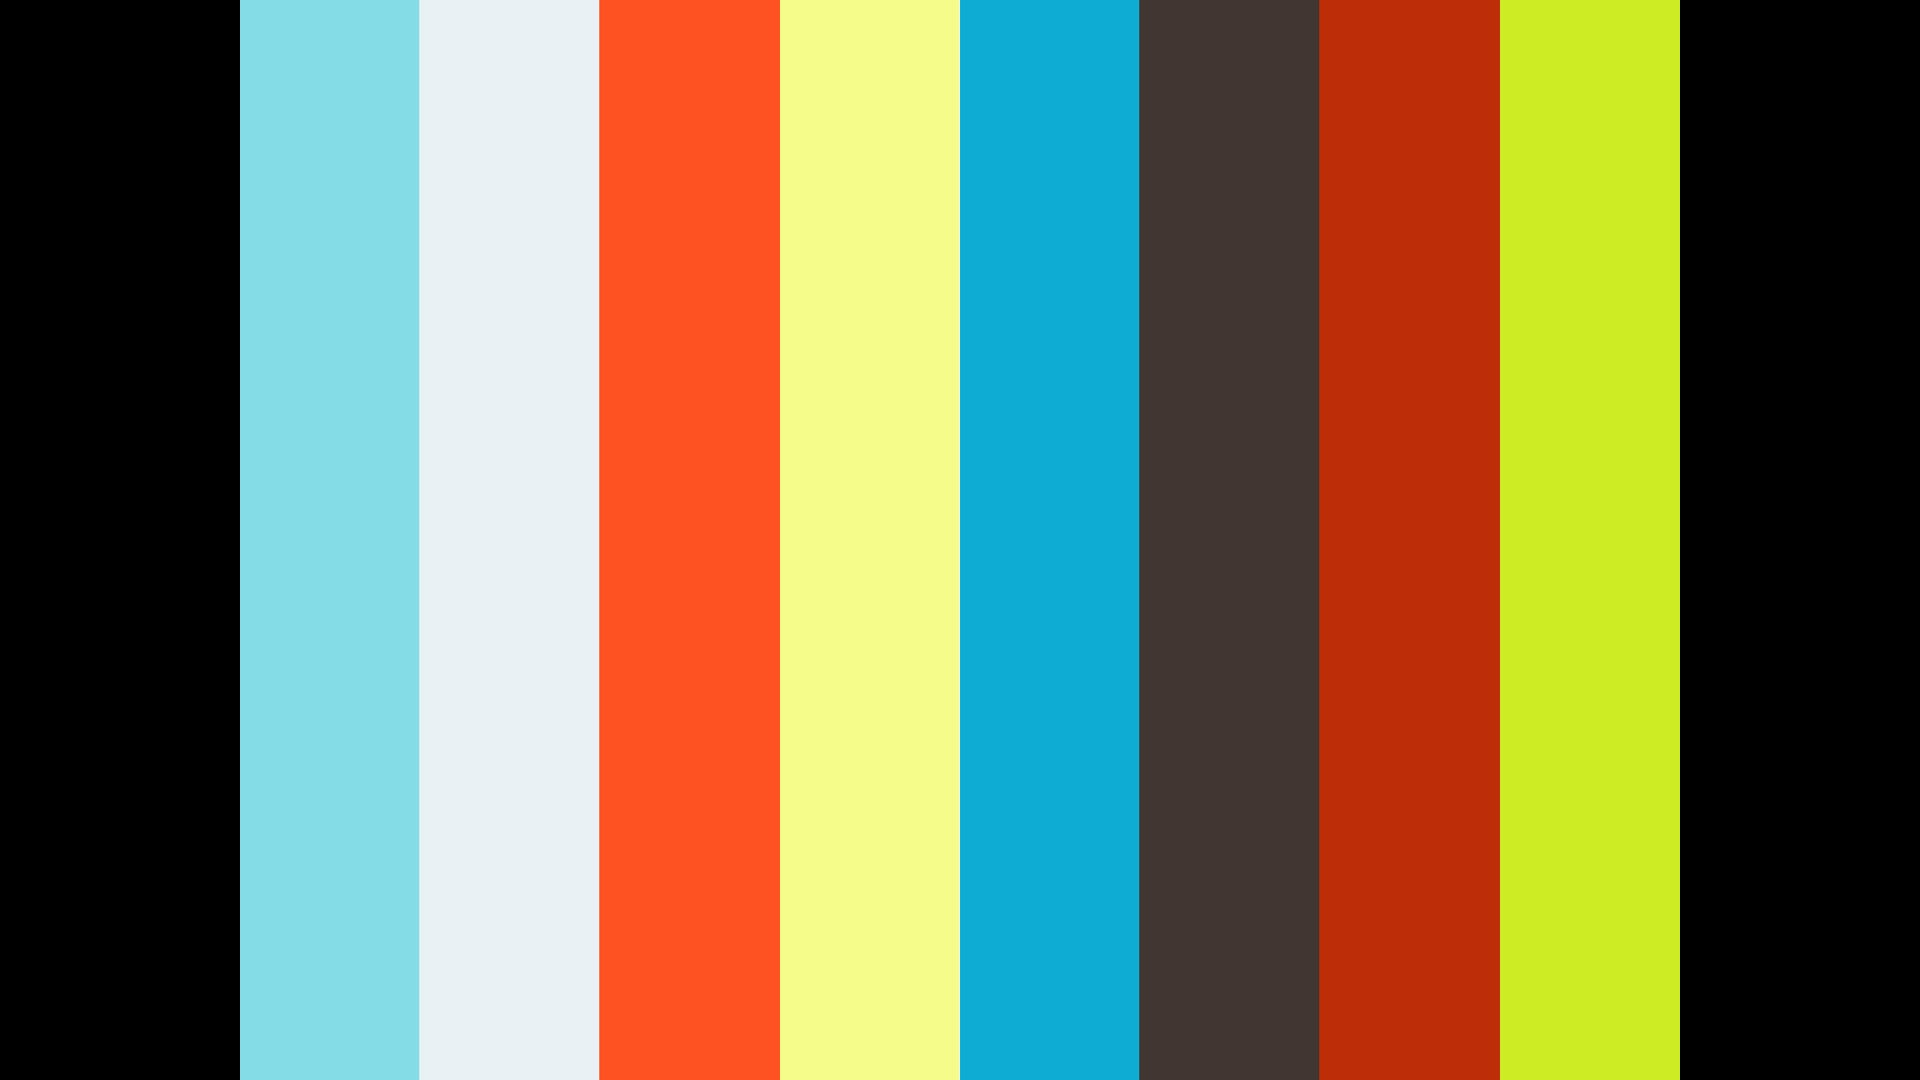 Professor Helen Dodd speaks about the importance of free play for children's mental health